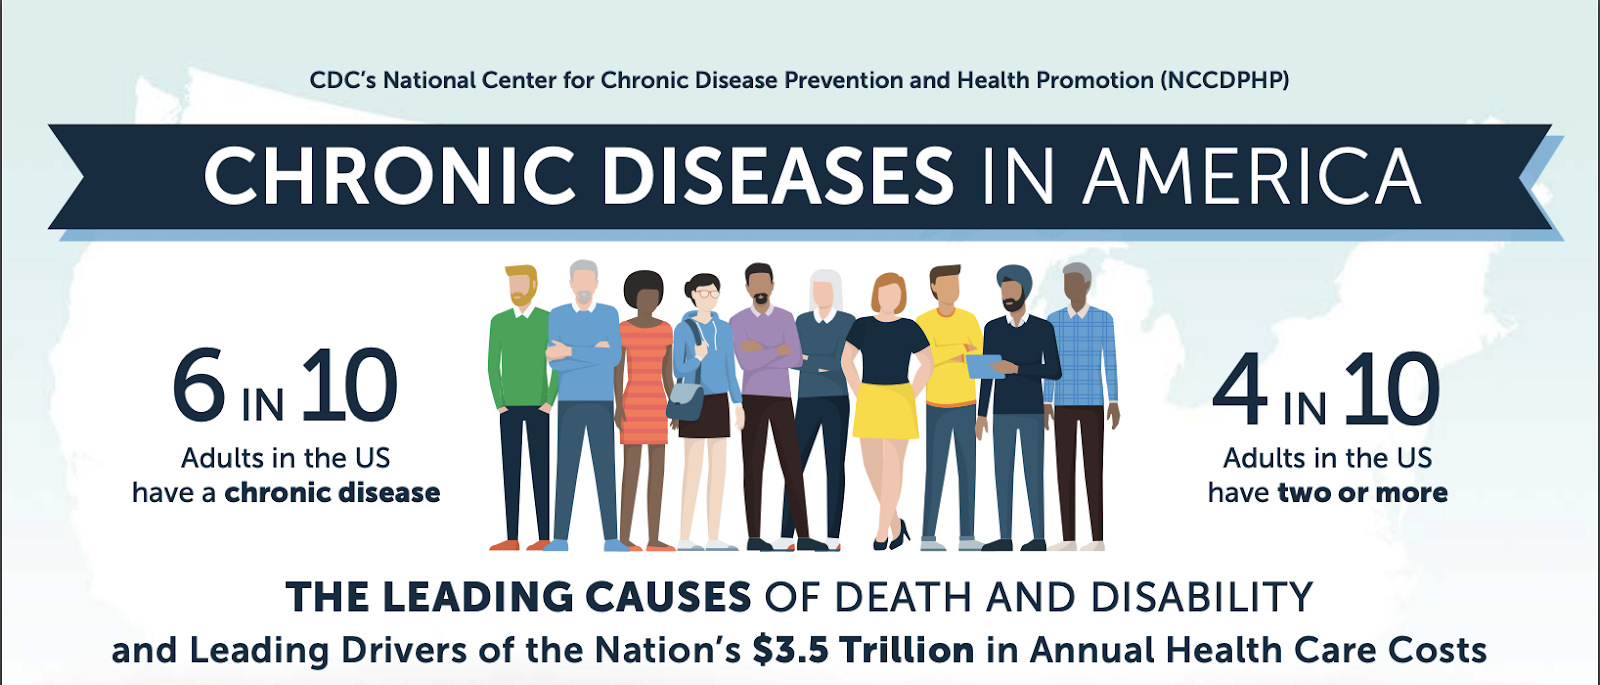 Integrated medicine Austin: CDC statistics about chronic diseases in America